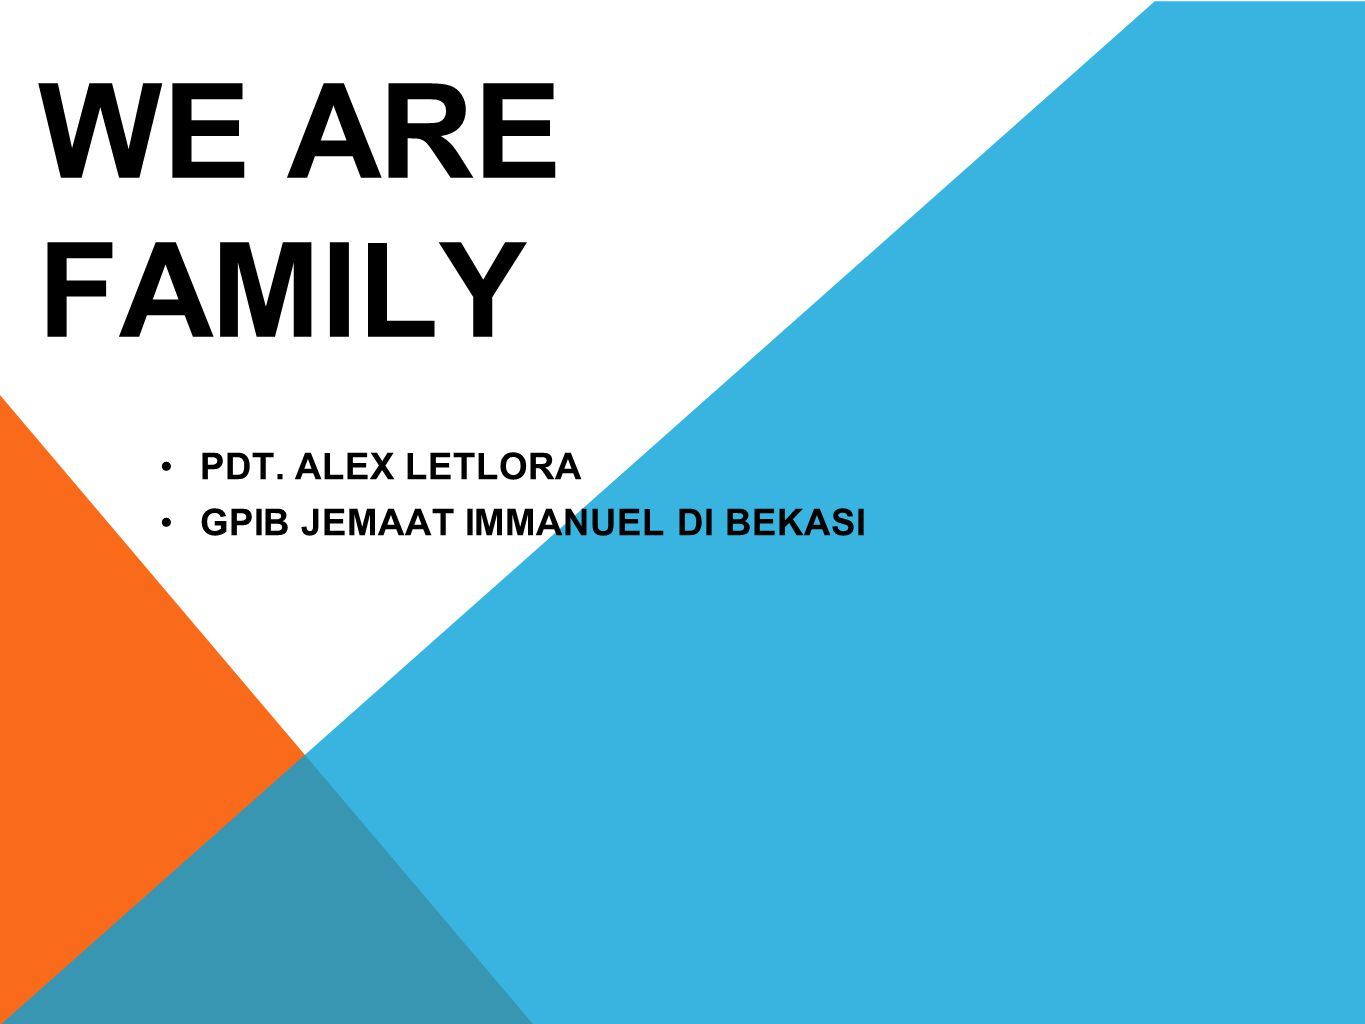 WE ARE FAMILY PDT. ALEX LETLORA GPIB JEMAAT IMMANUEL DI BEKASI